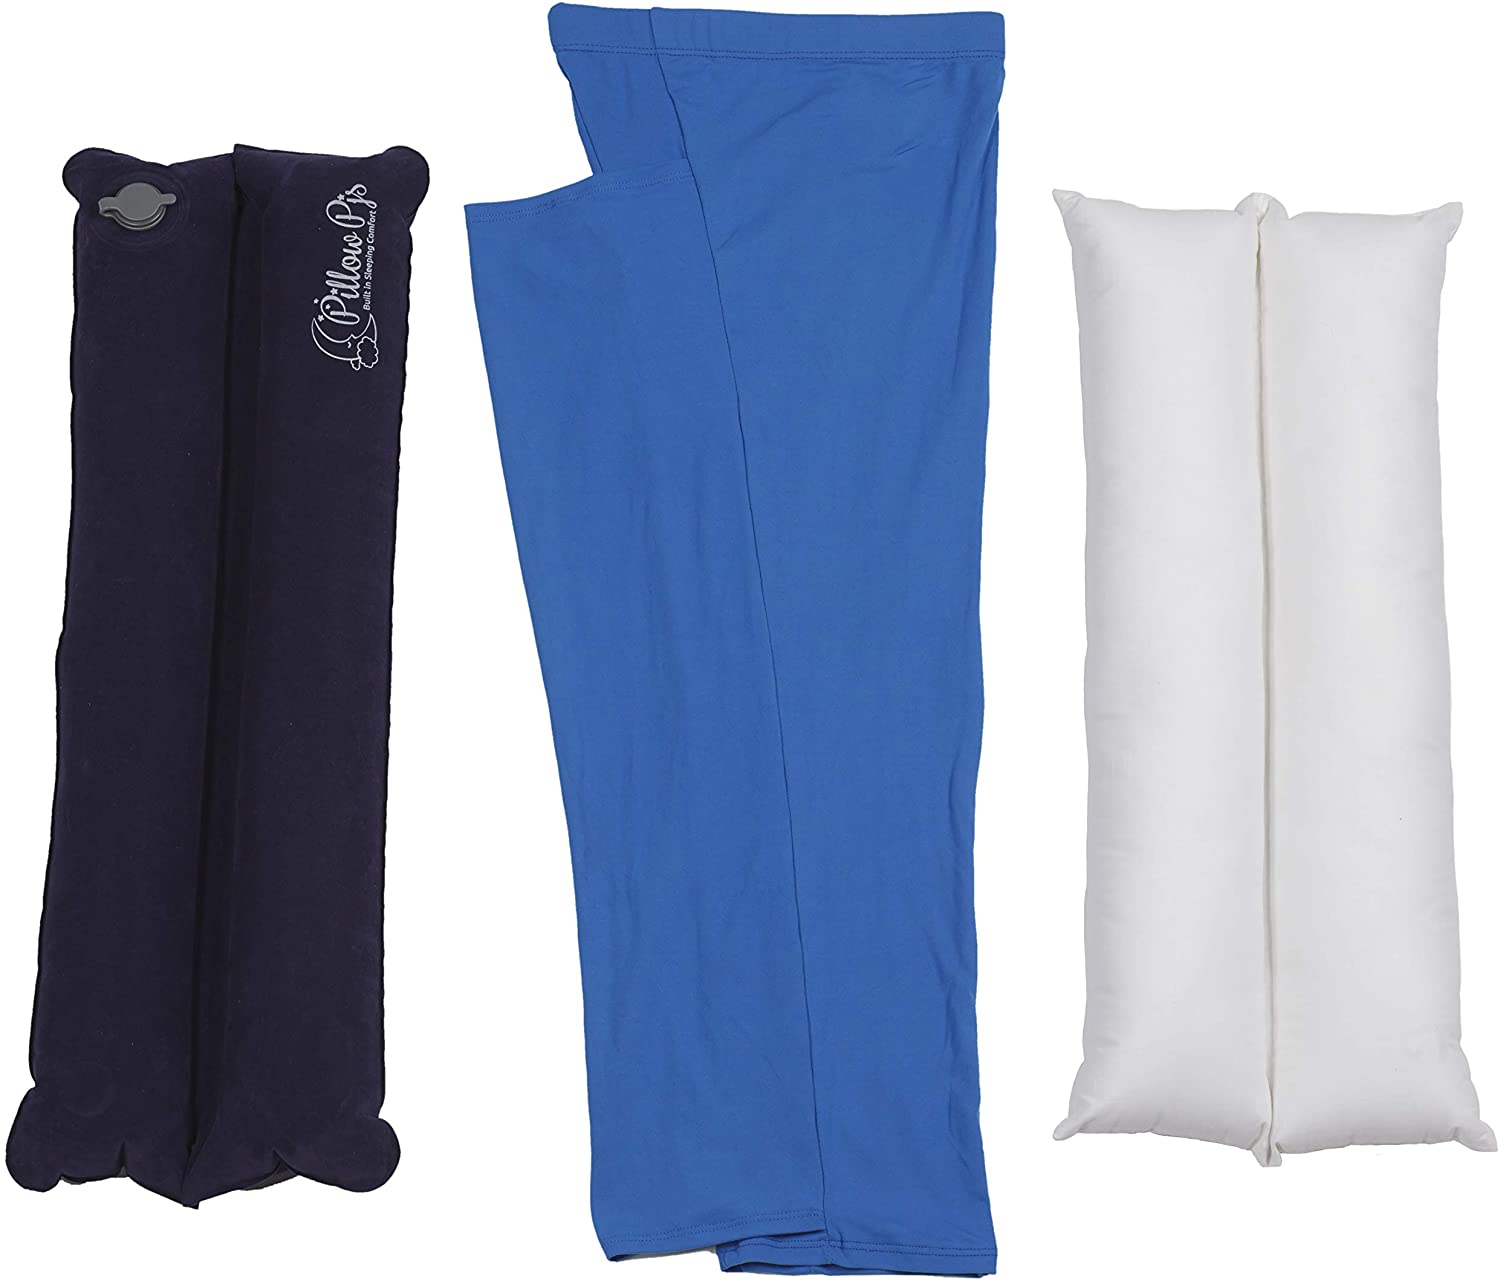 Pillow PJs - New – Womens Knee Pillow for Sleeping - Stretchy Comfortable Sleeve with Pillow Plus Free Inflatable Travel Pillow (Small to Large)